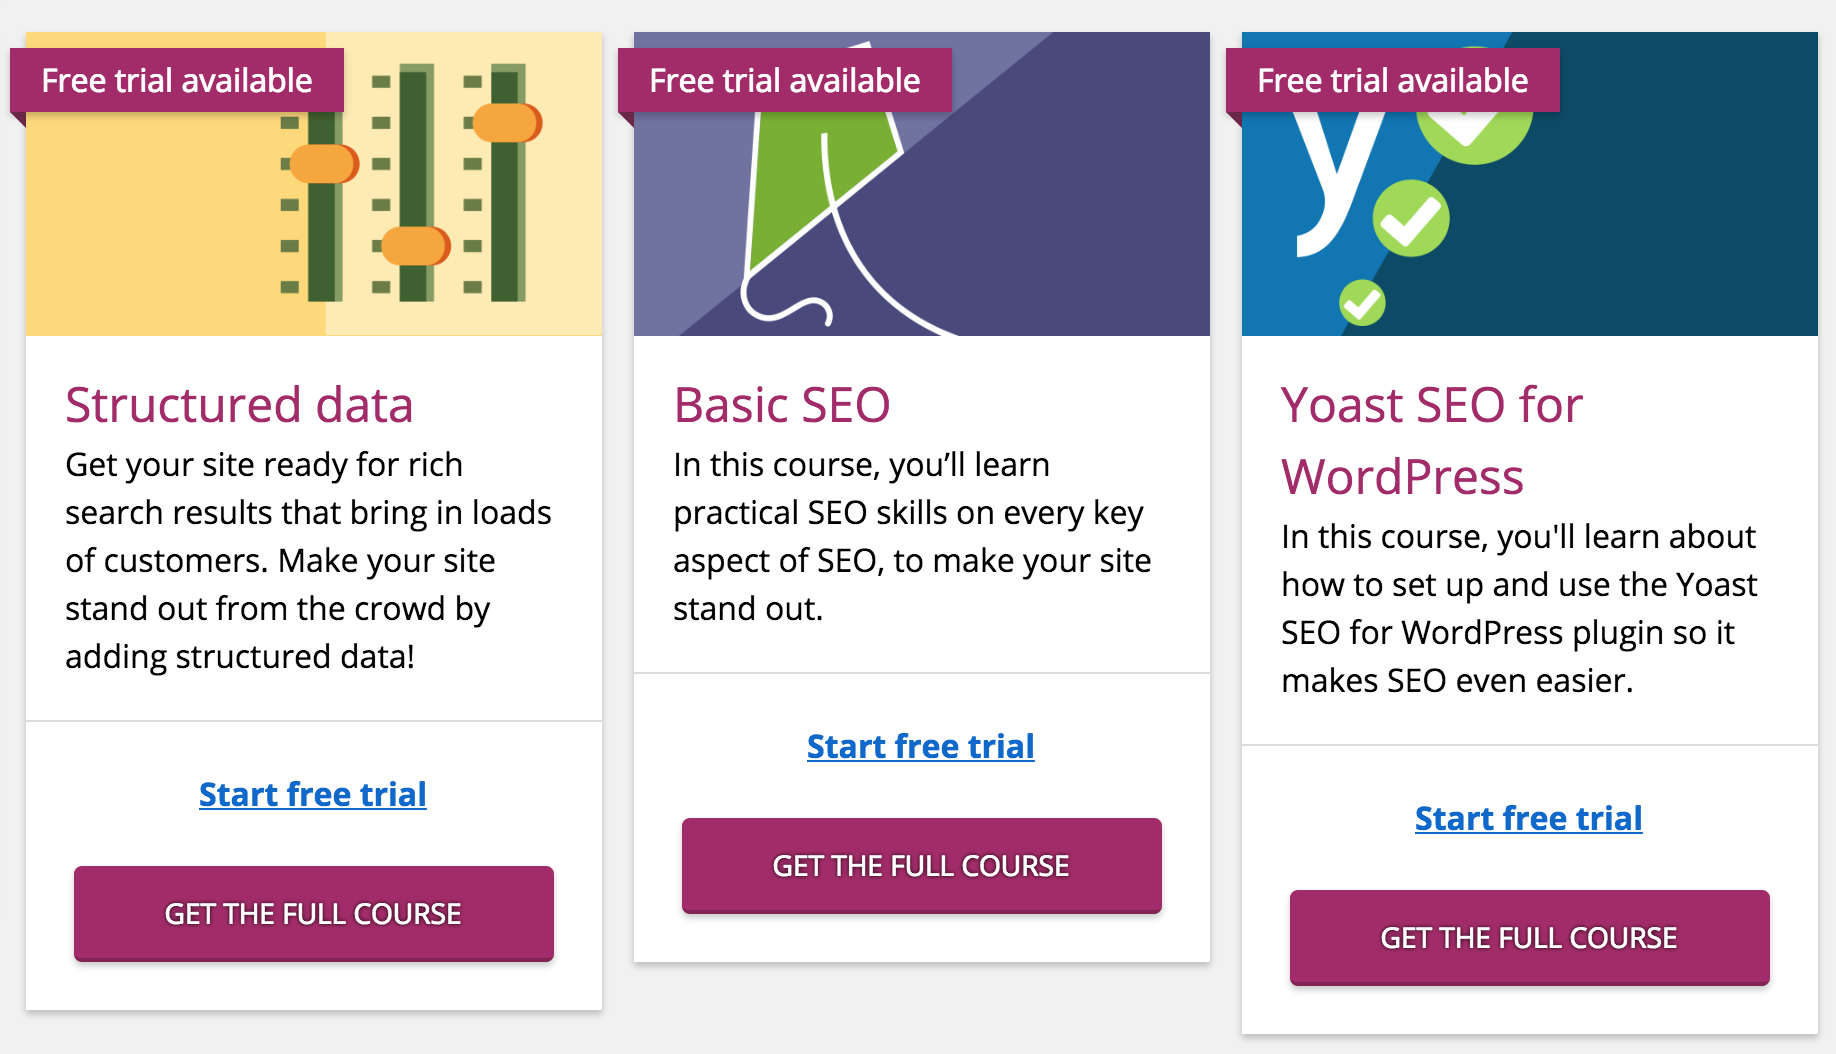 free trials of yoast academy SEO courses